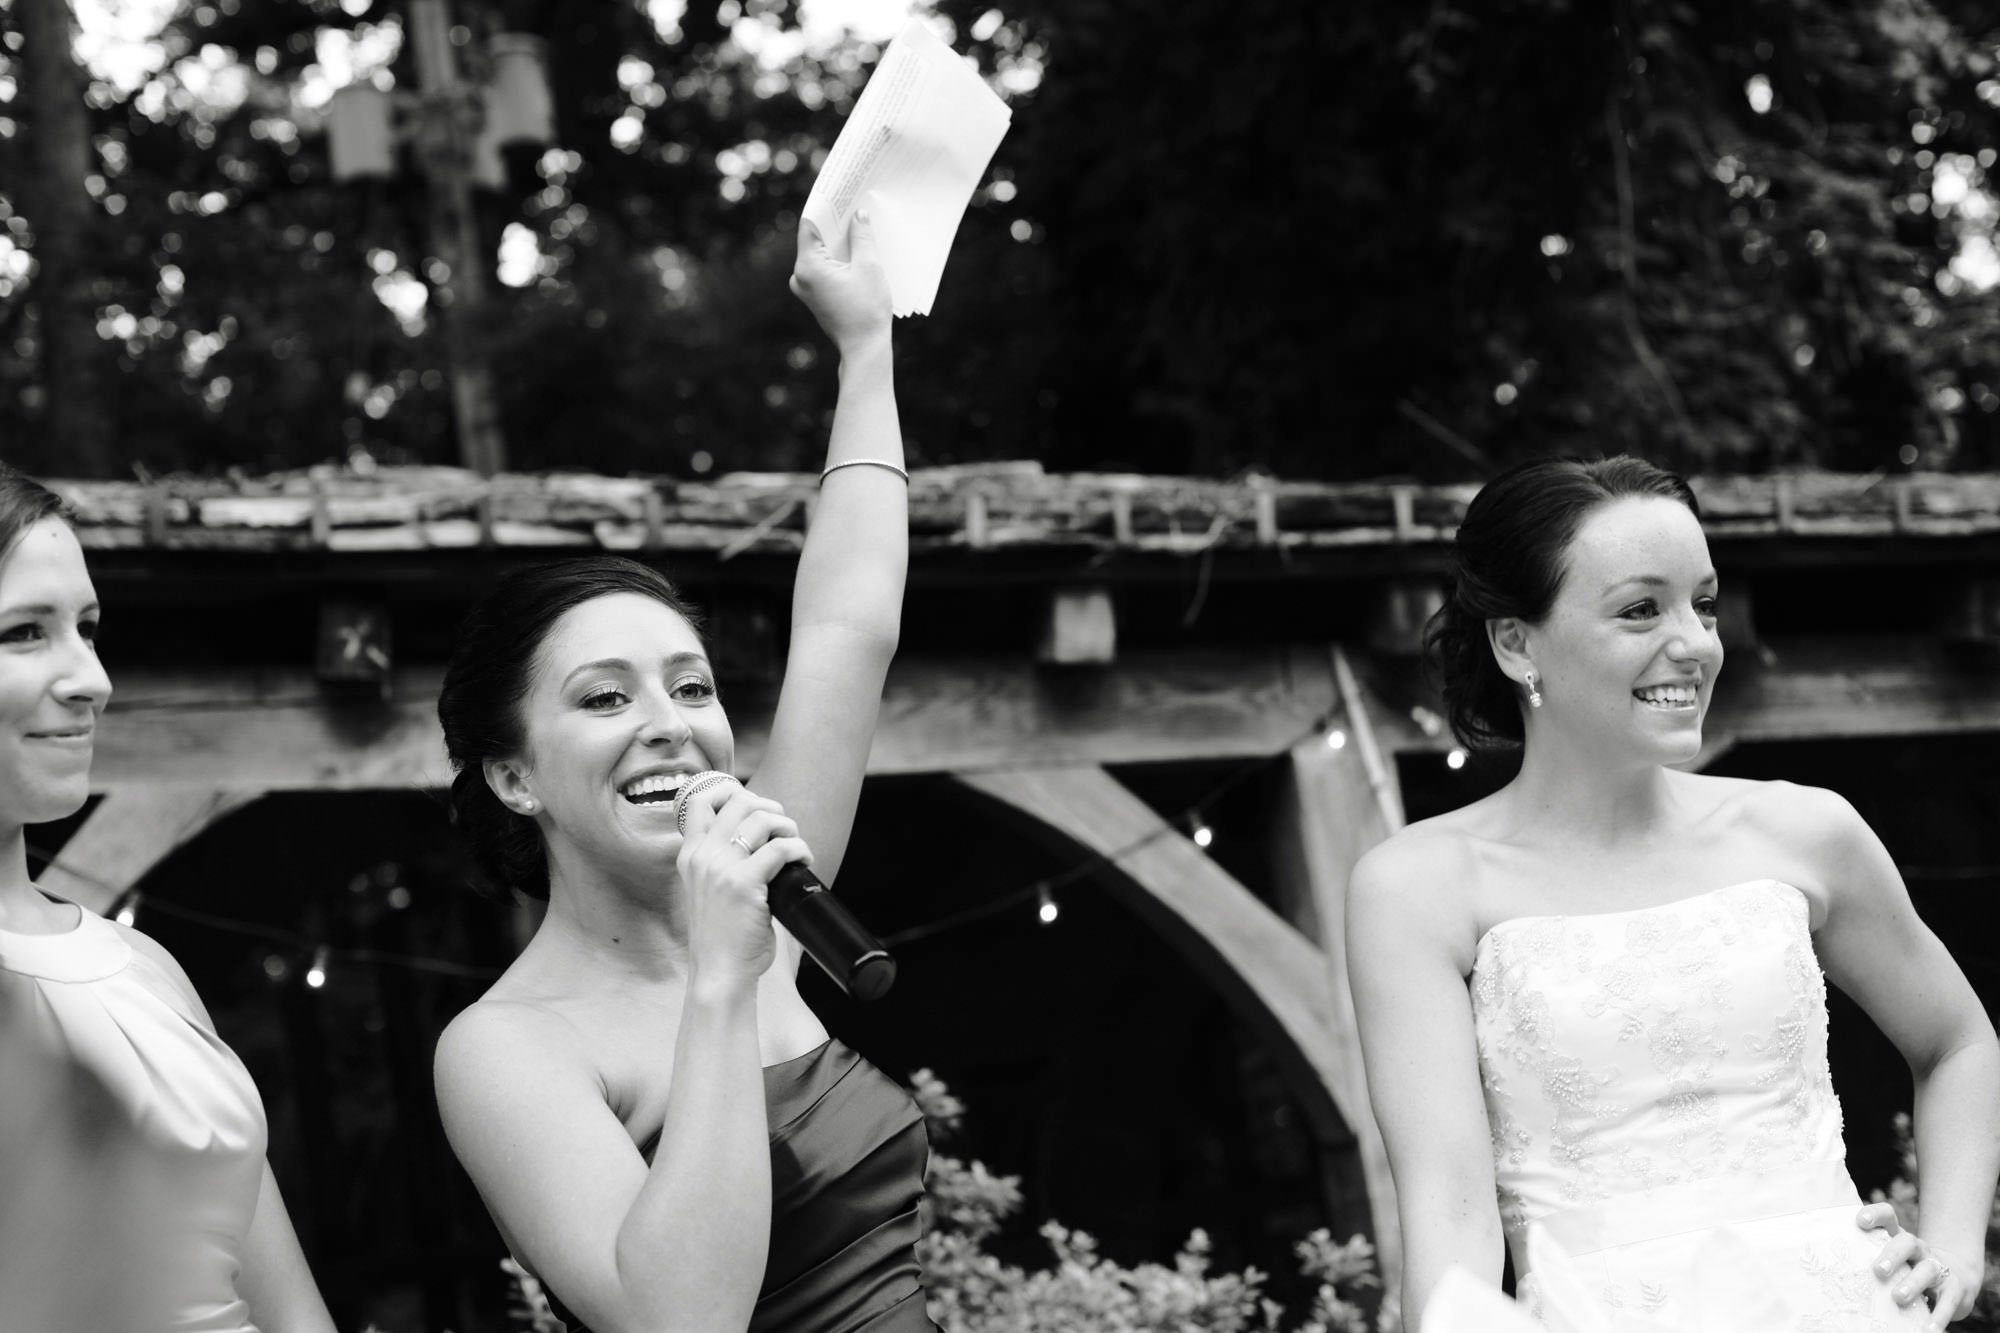 Cloisters Castle Wedding  I  The maid of honor gives a toast during the wedding reception.